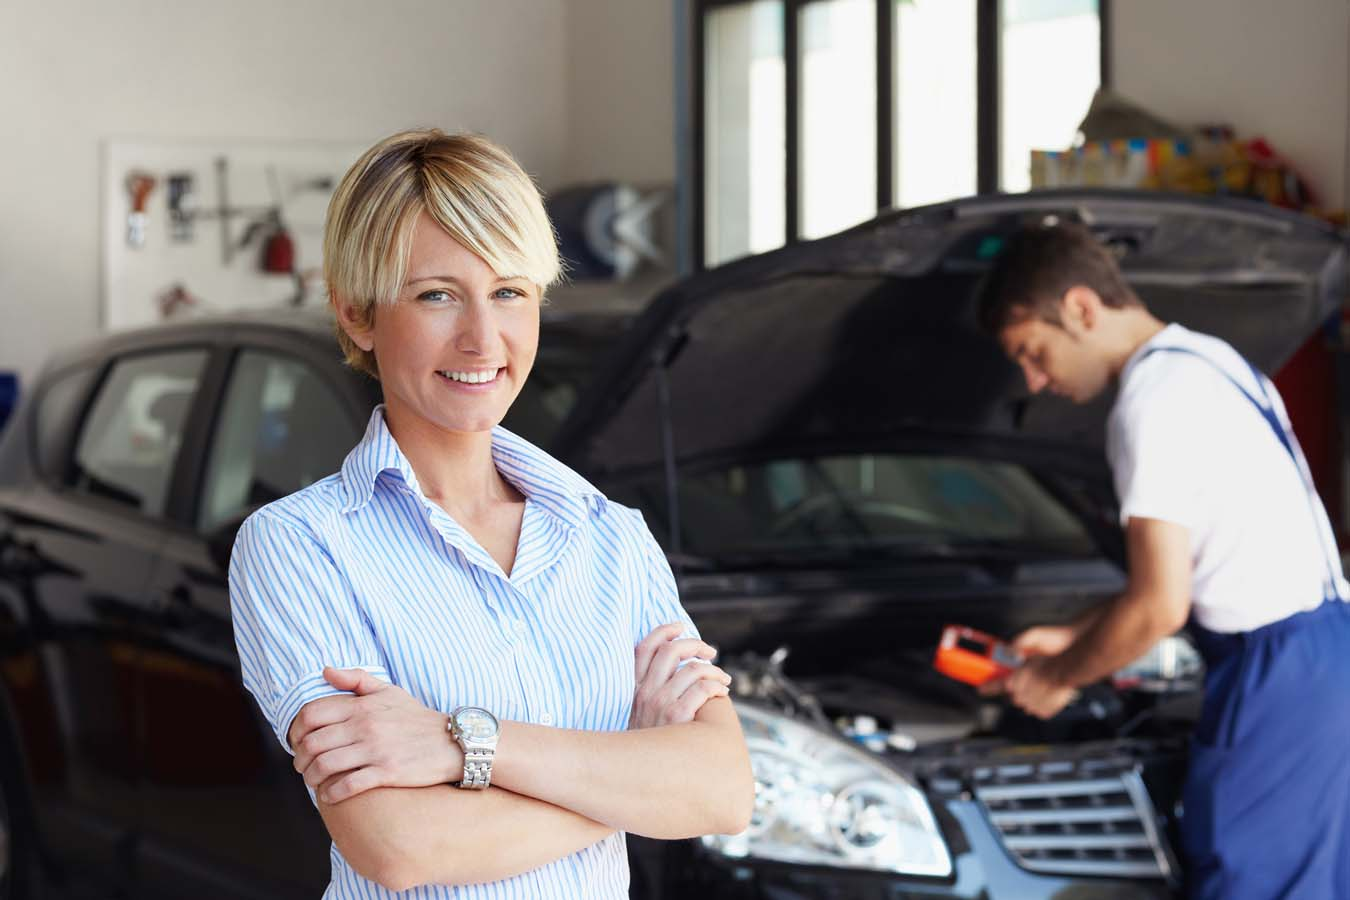 Health inspection and suspension repairs rockhampton